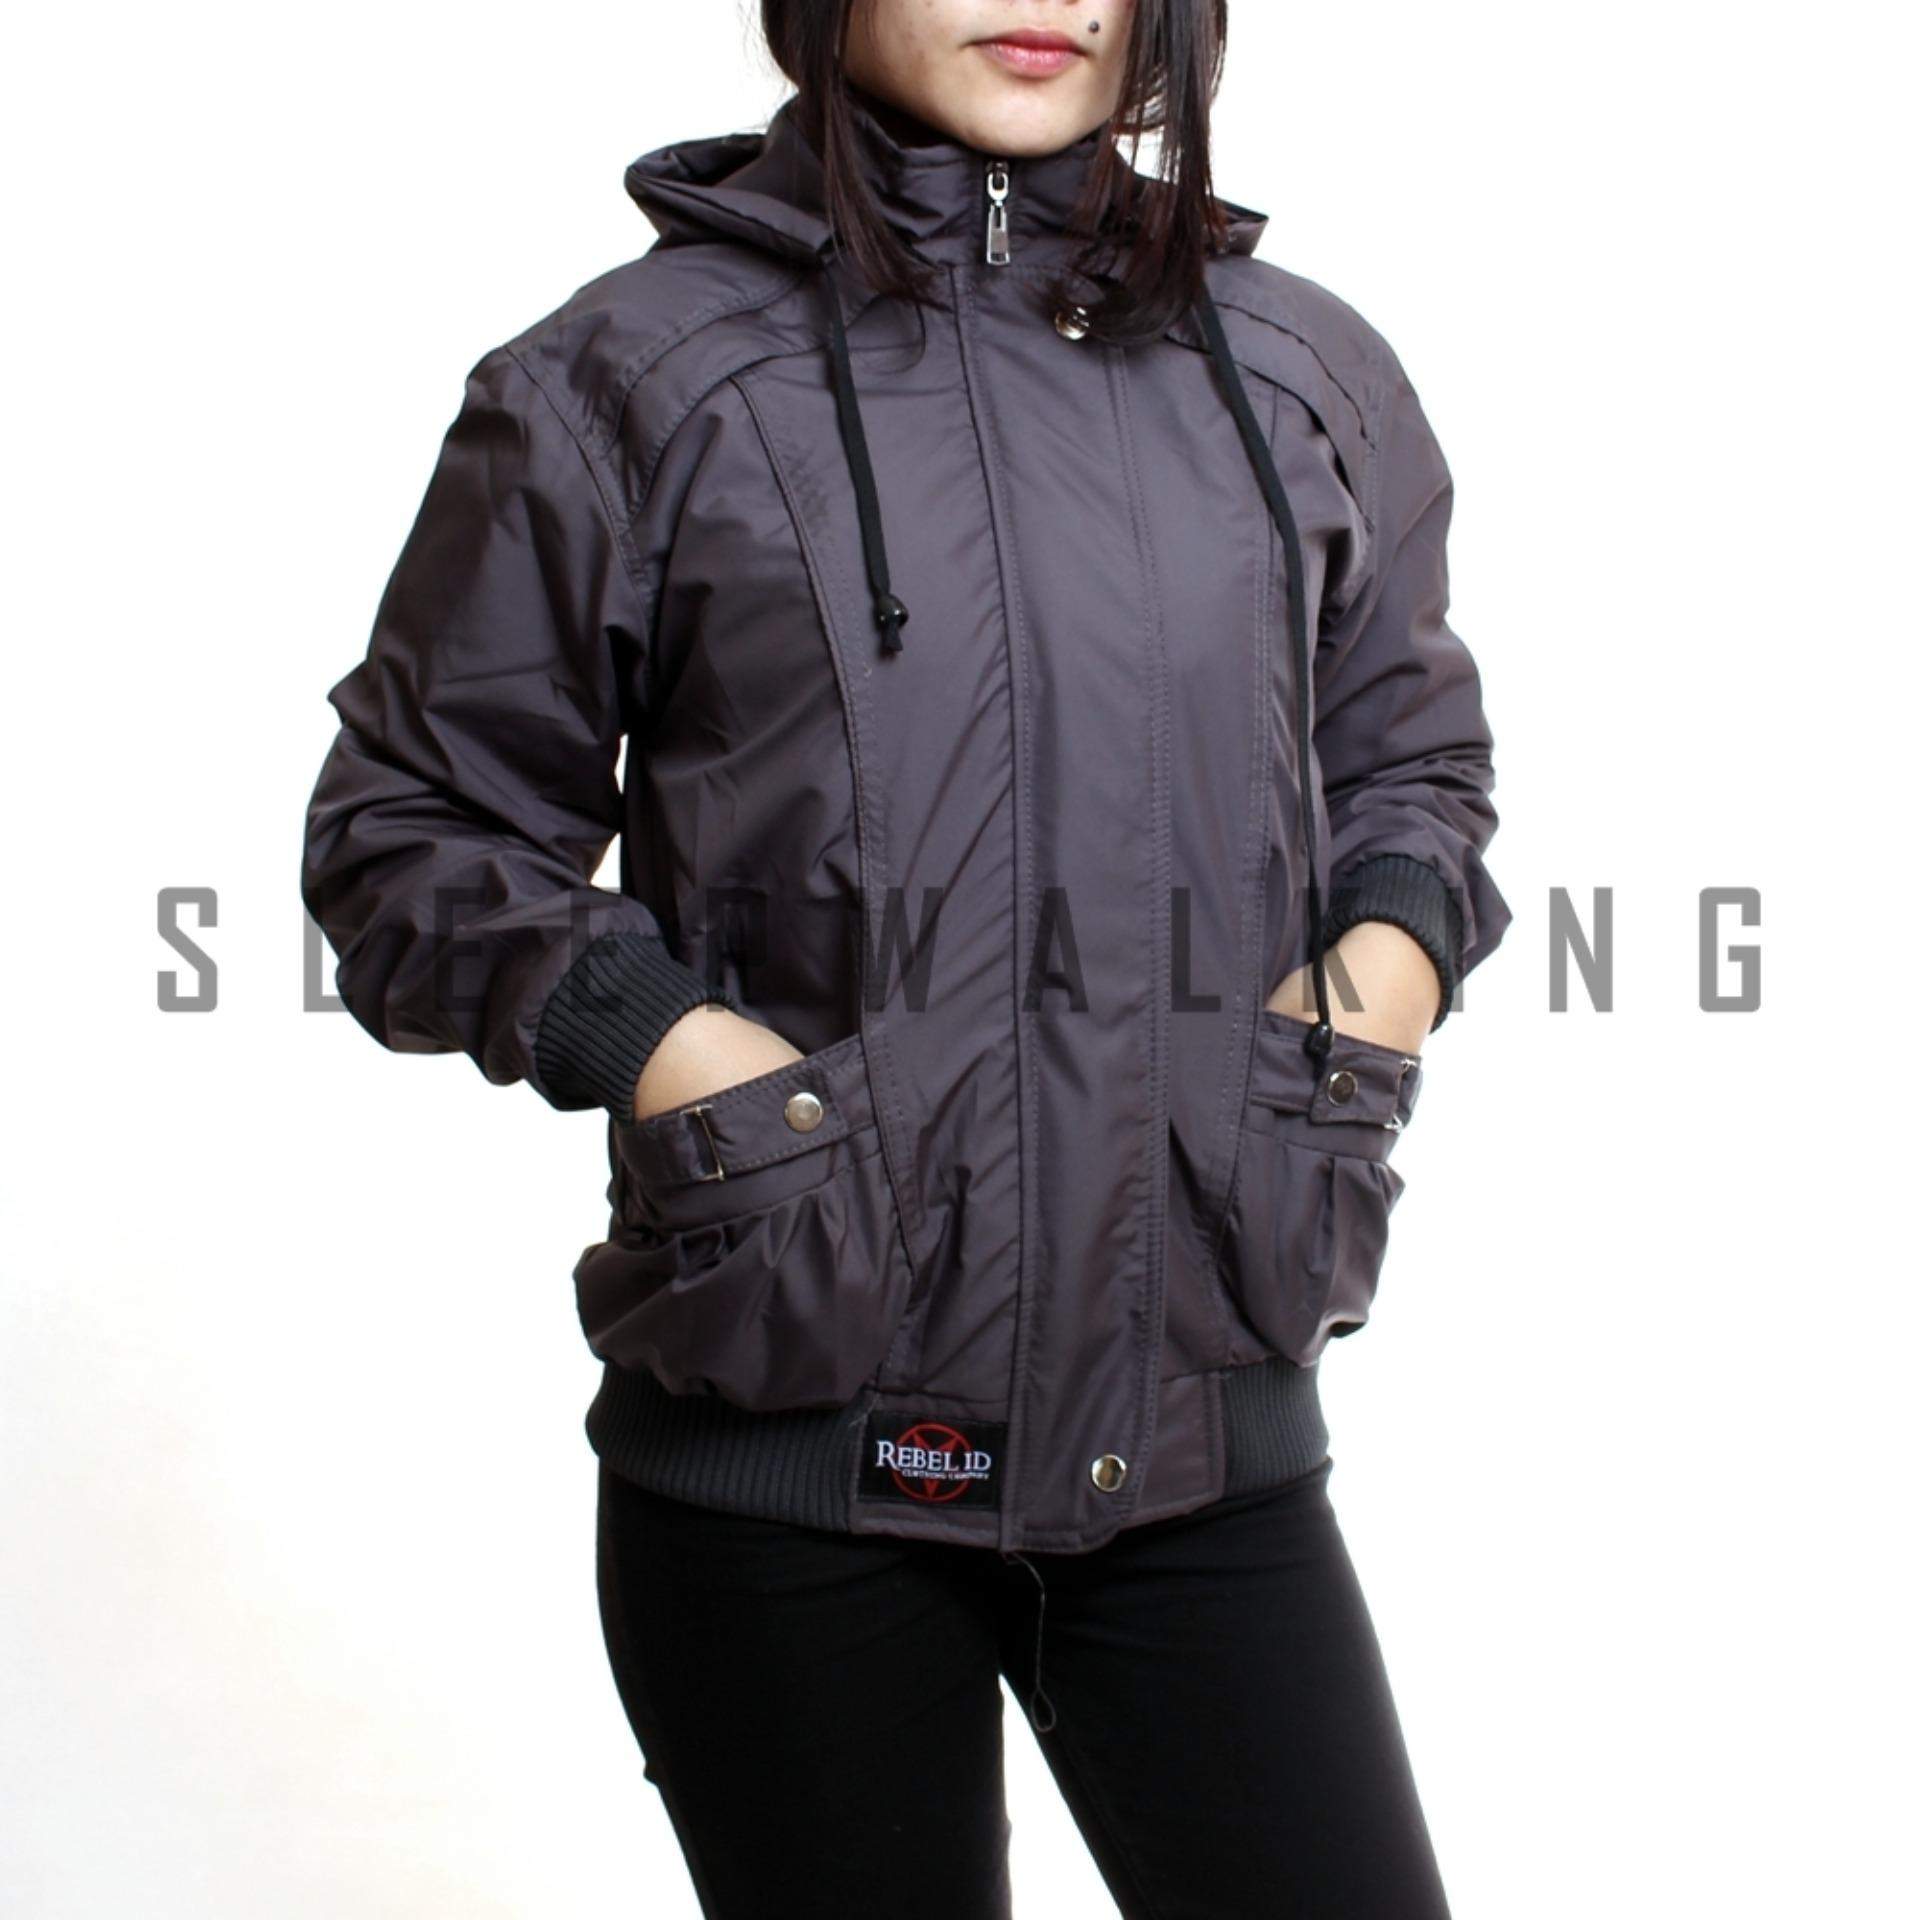 SW JAKET CASUAL WANITA PARASUT WATERPROOF BEST SELLER 737252b26b